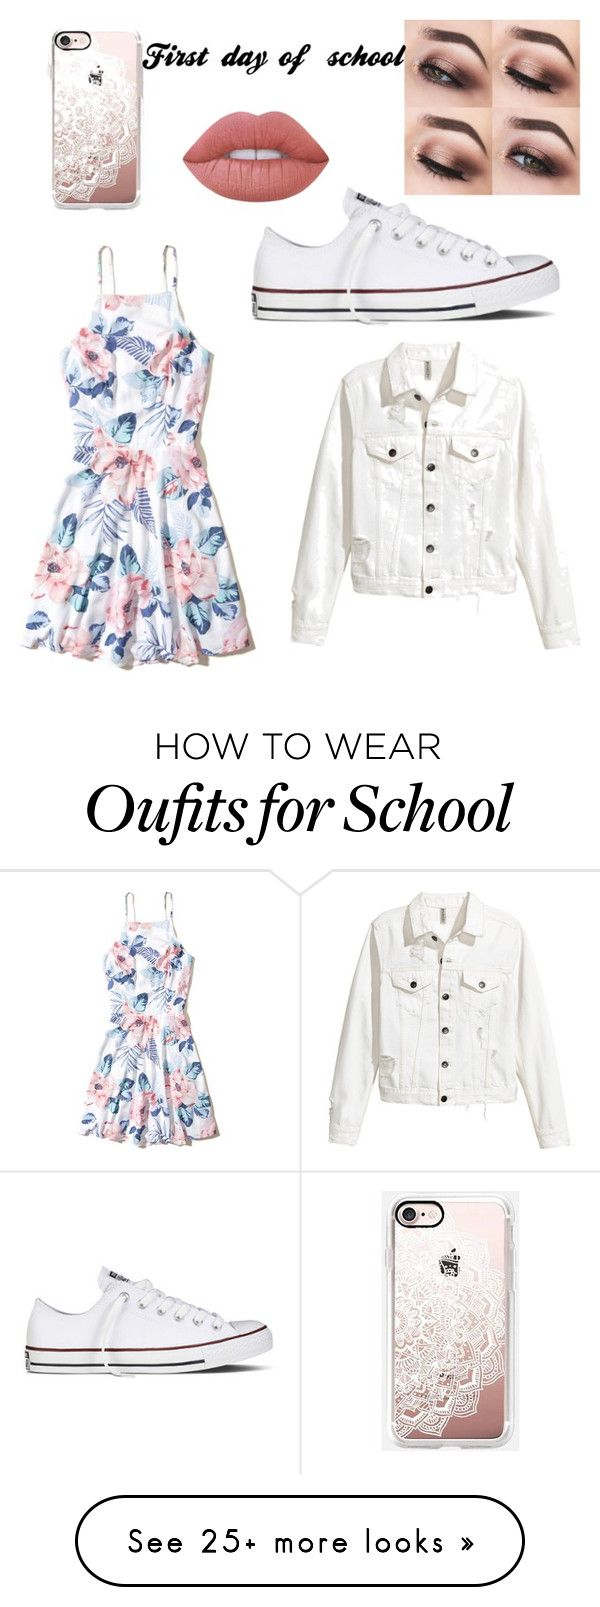 """First day of school"" by slapthecrazyunicorn on Polyvore featuring Hollister Co., Converse, Casetify and Lime Crime"